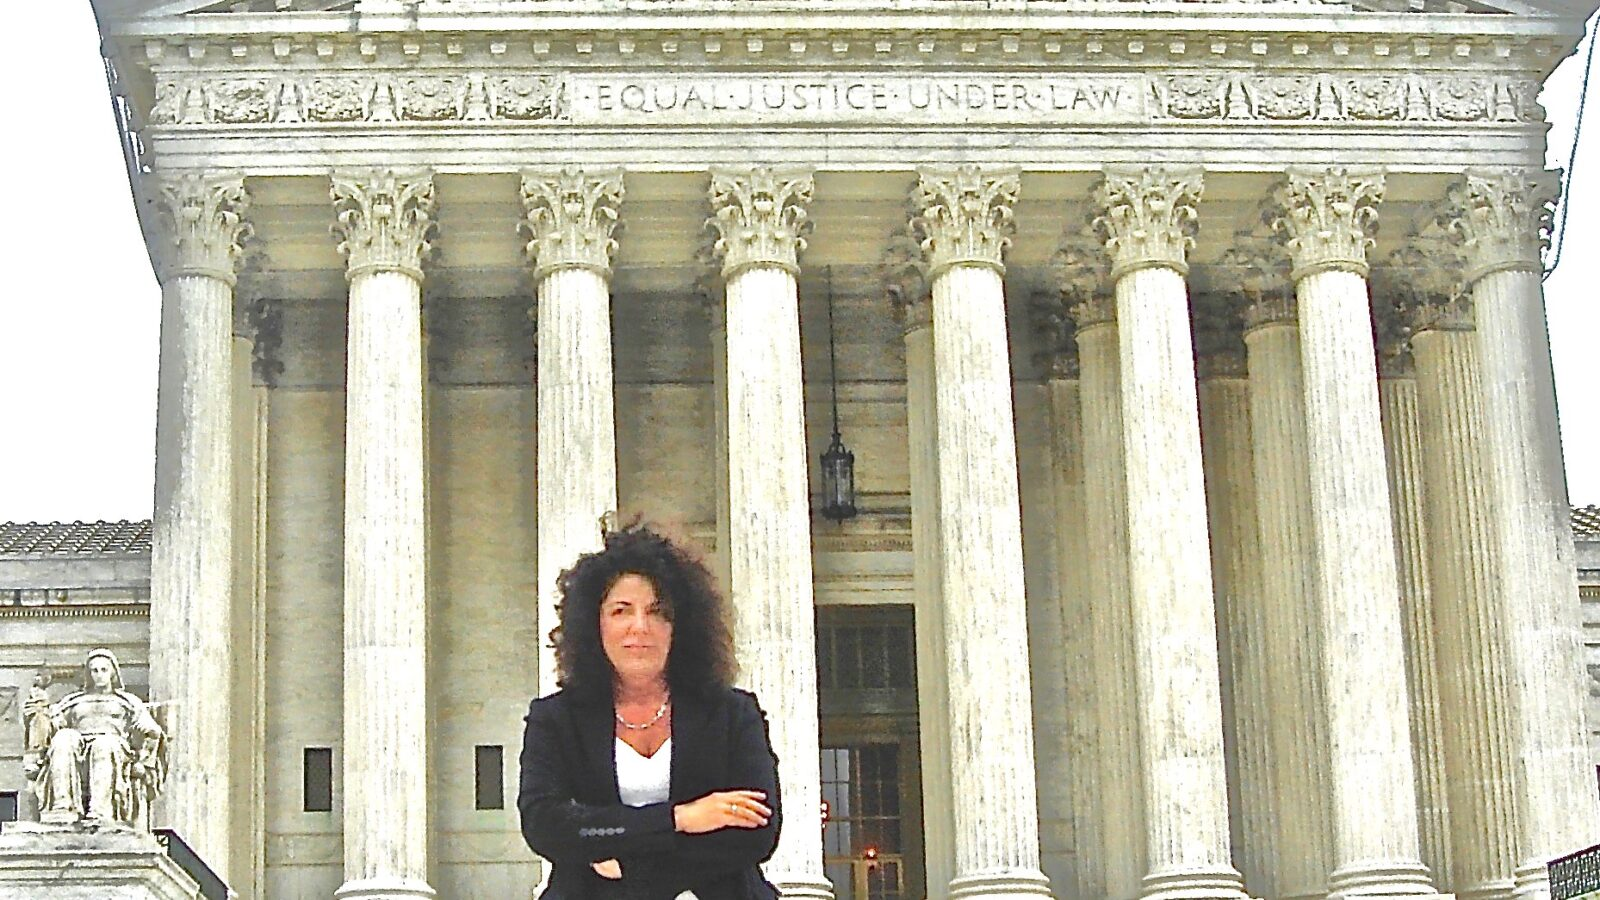 High Profile Lawyer Susan Chana Lask at Supreme Court